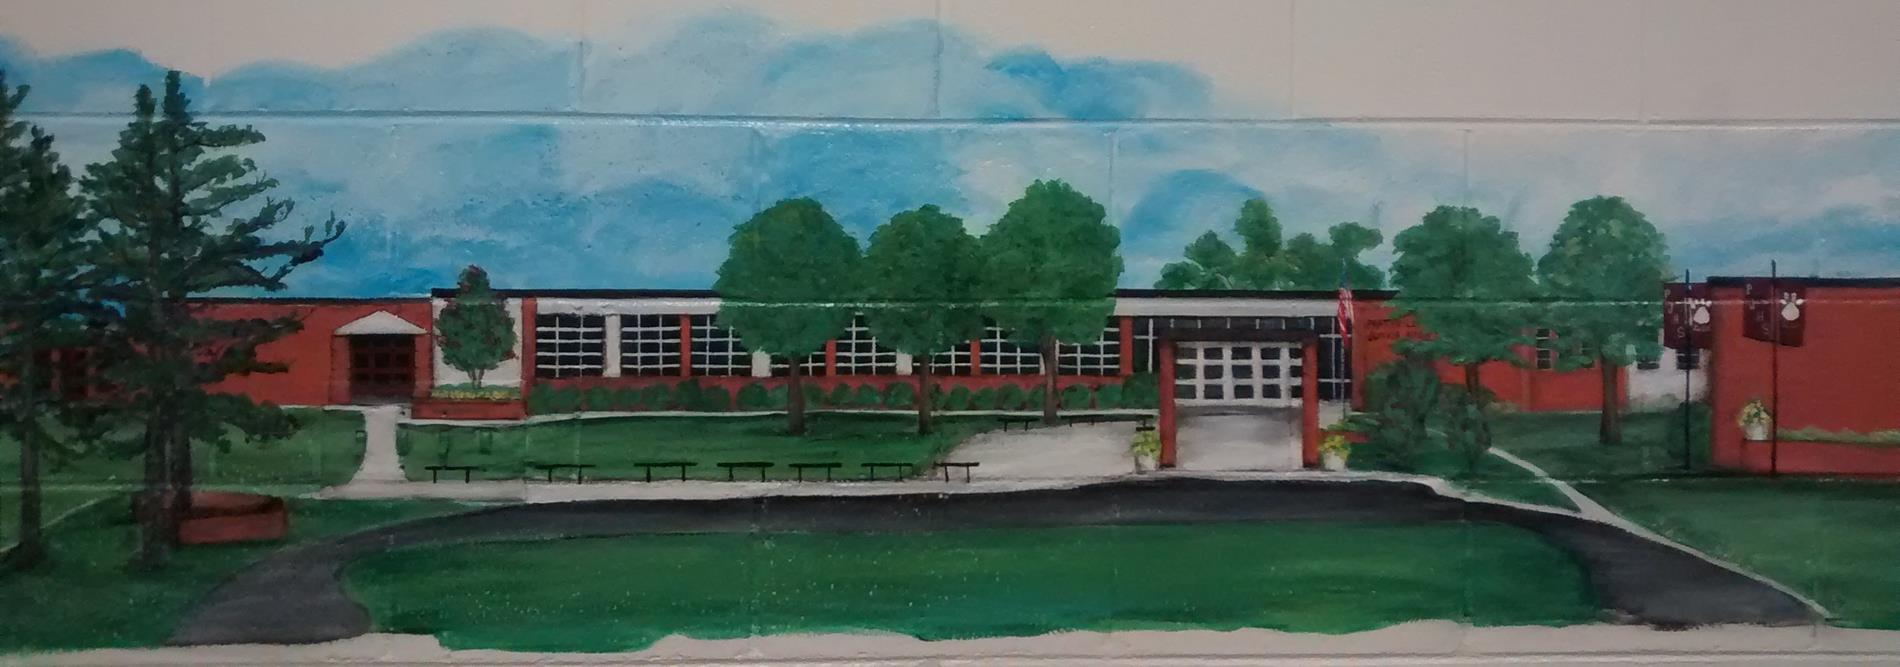 painting of school